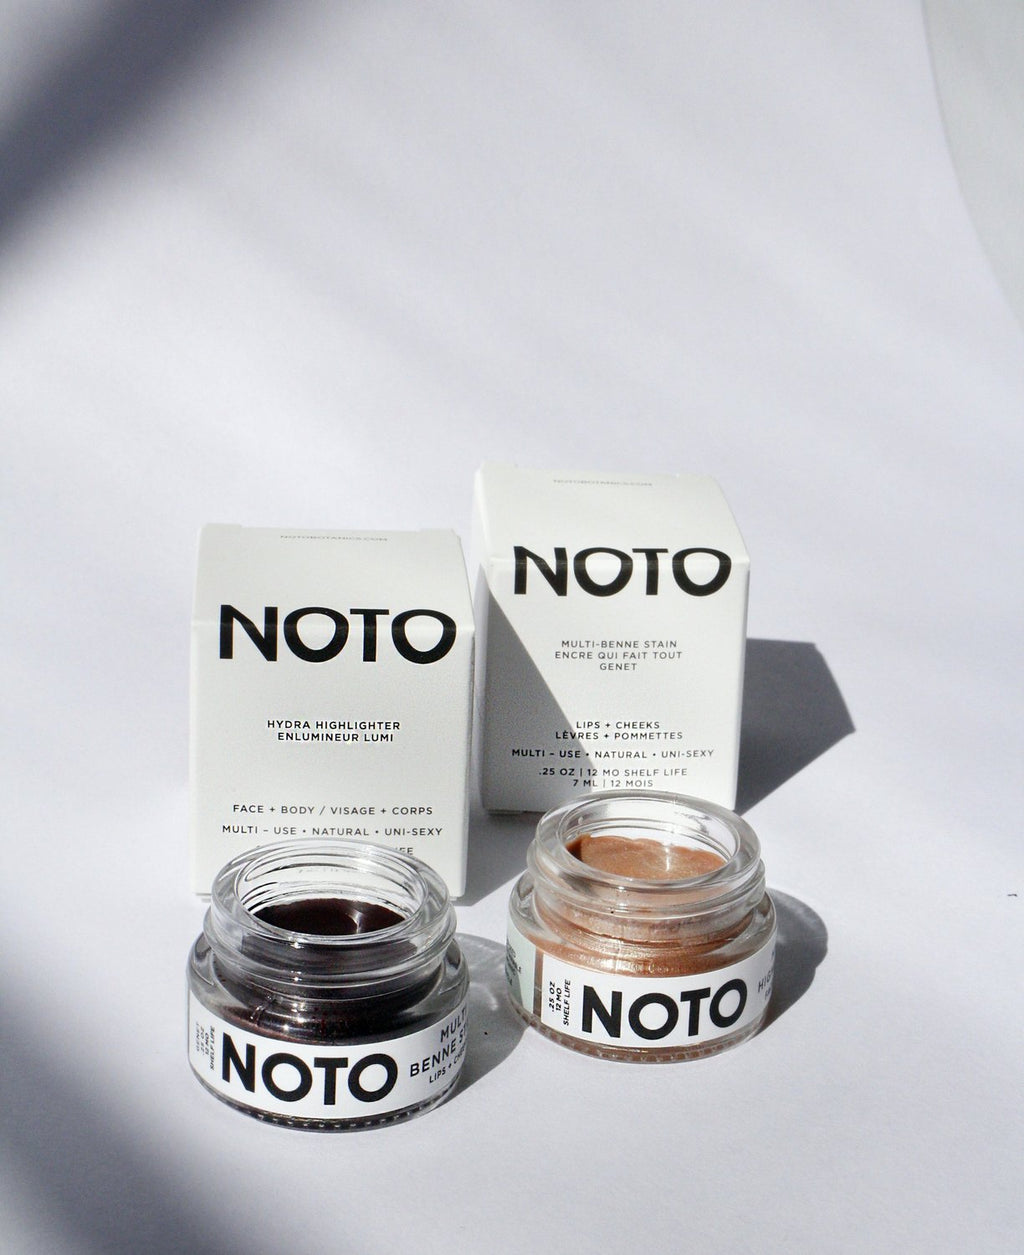 NOTO 2 in 1 Color and Glow set featuring Genet Multi use lip stain + Hydra Highlighter